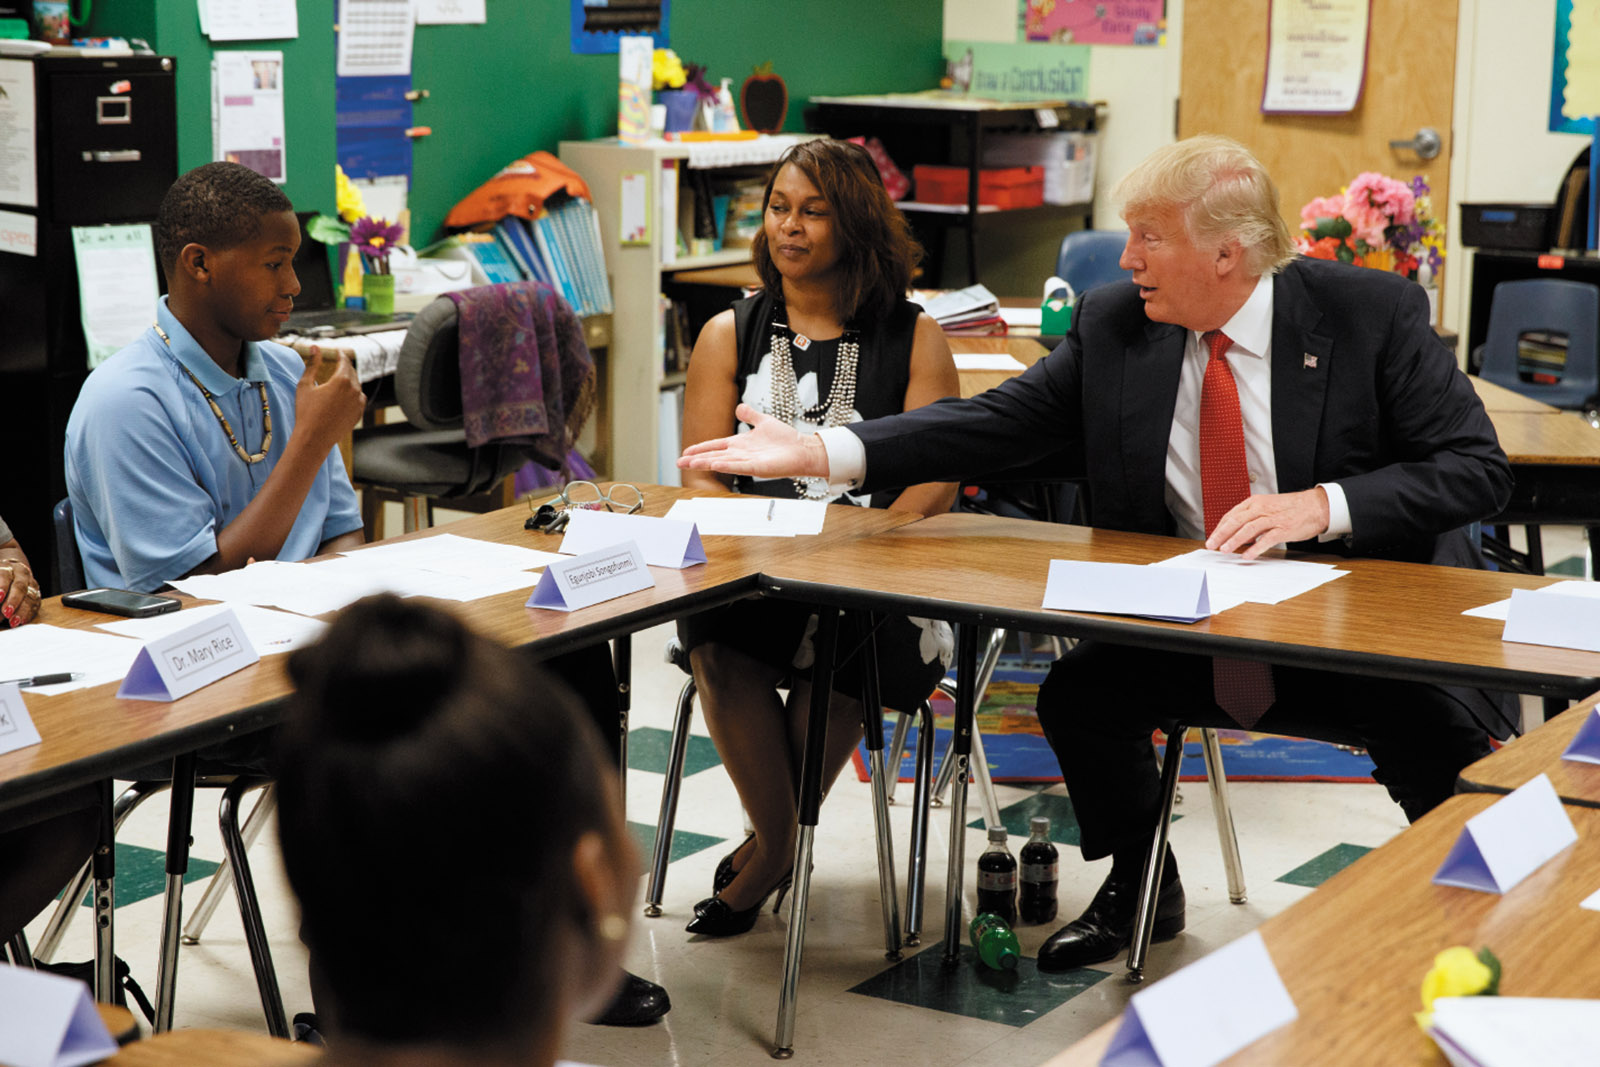 Donald Trump with students and educators at the Cleveland Arts and Social Sciences Academy, a for-profit charter school, before giving a speech on school choice, September 2016